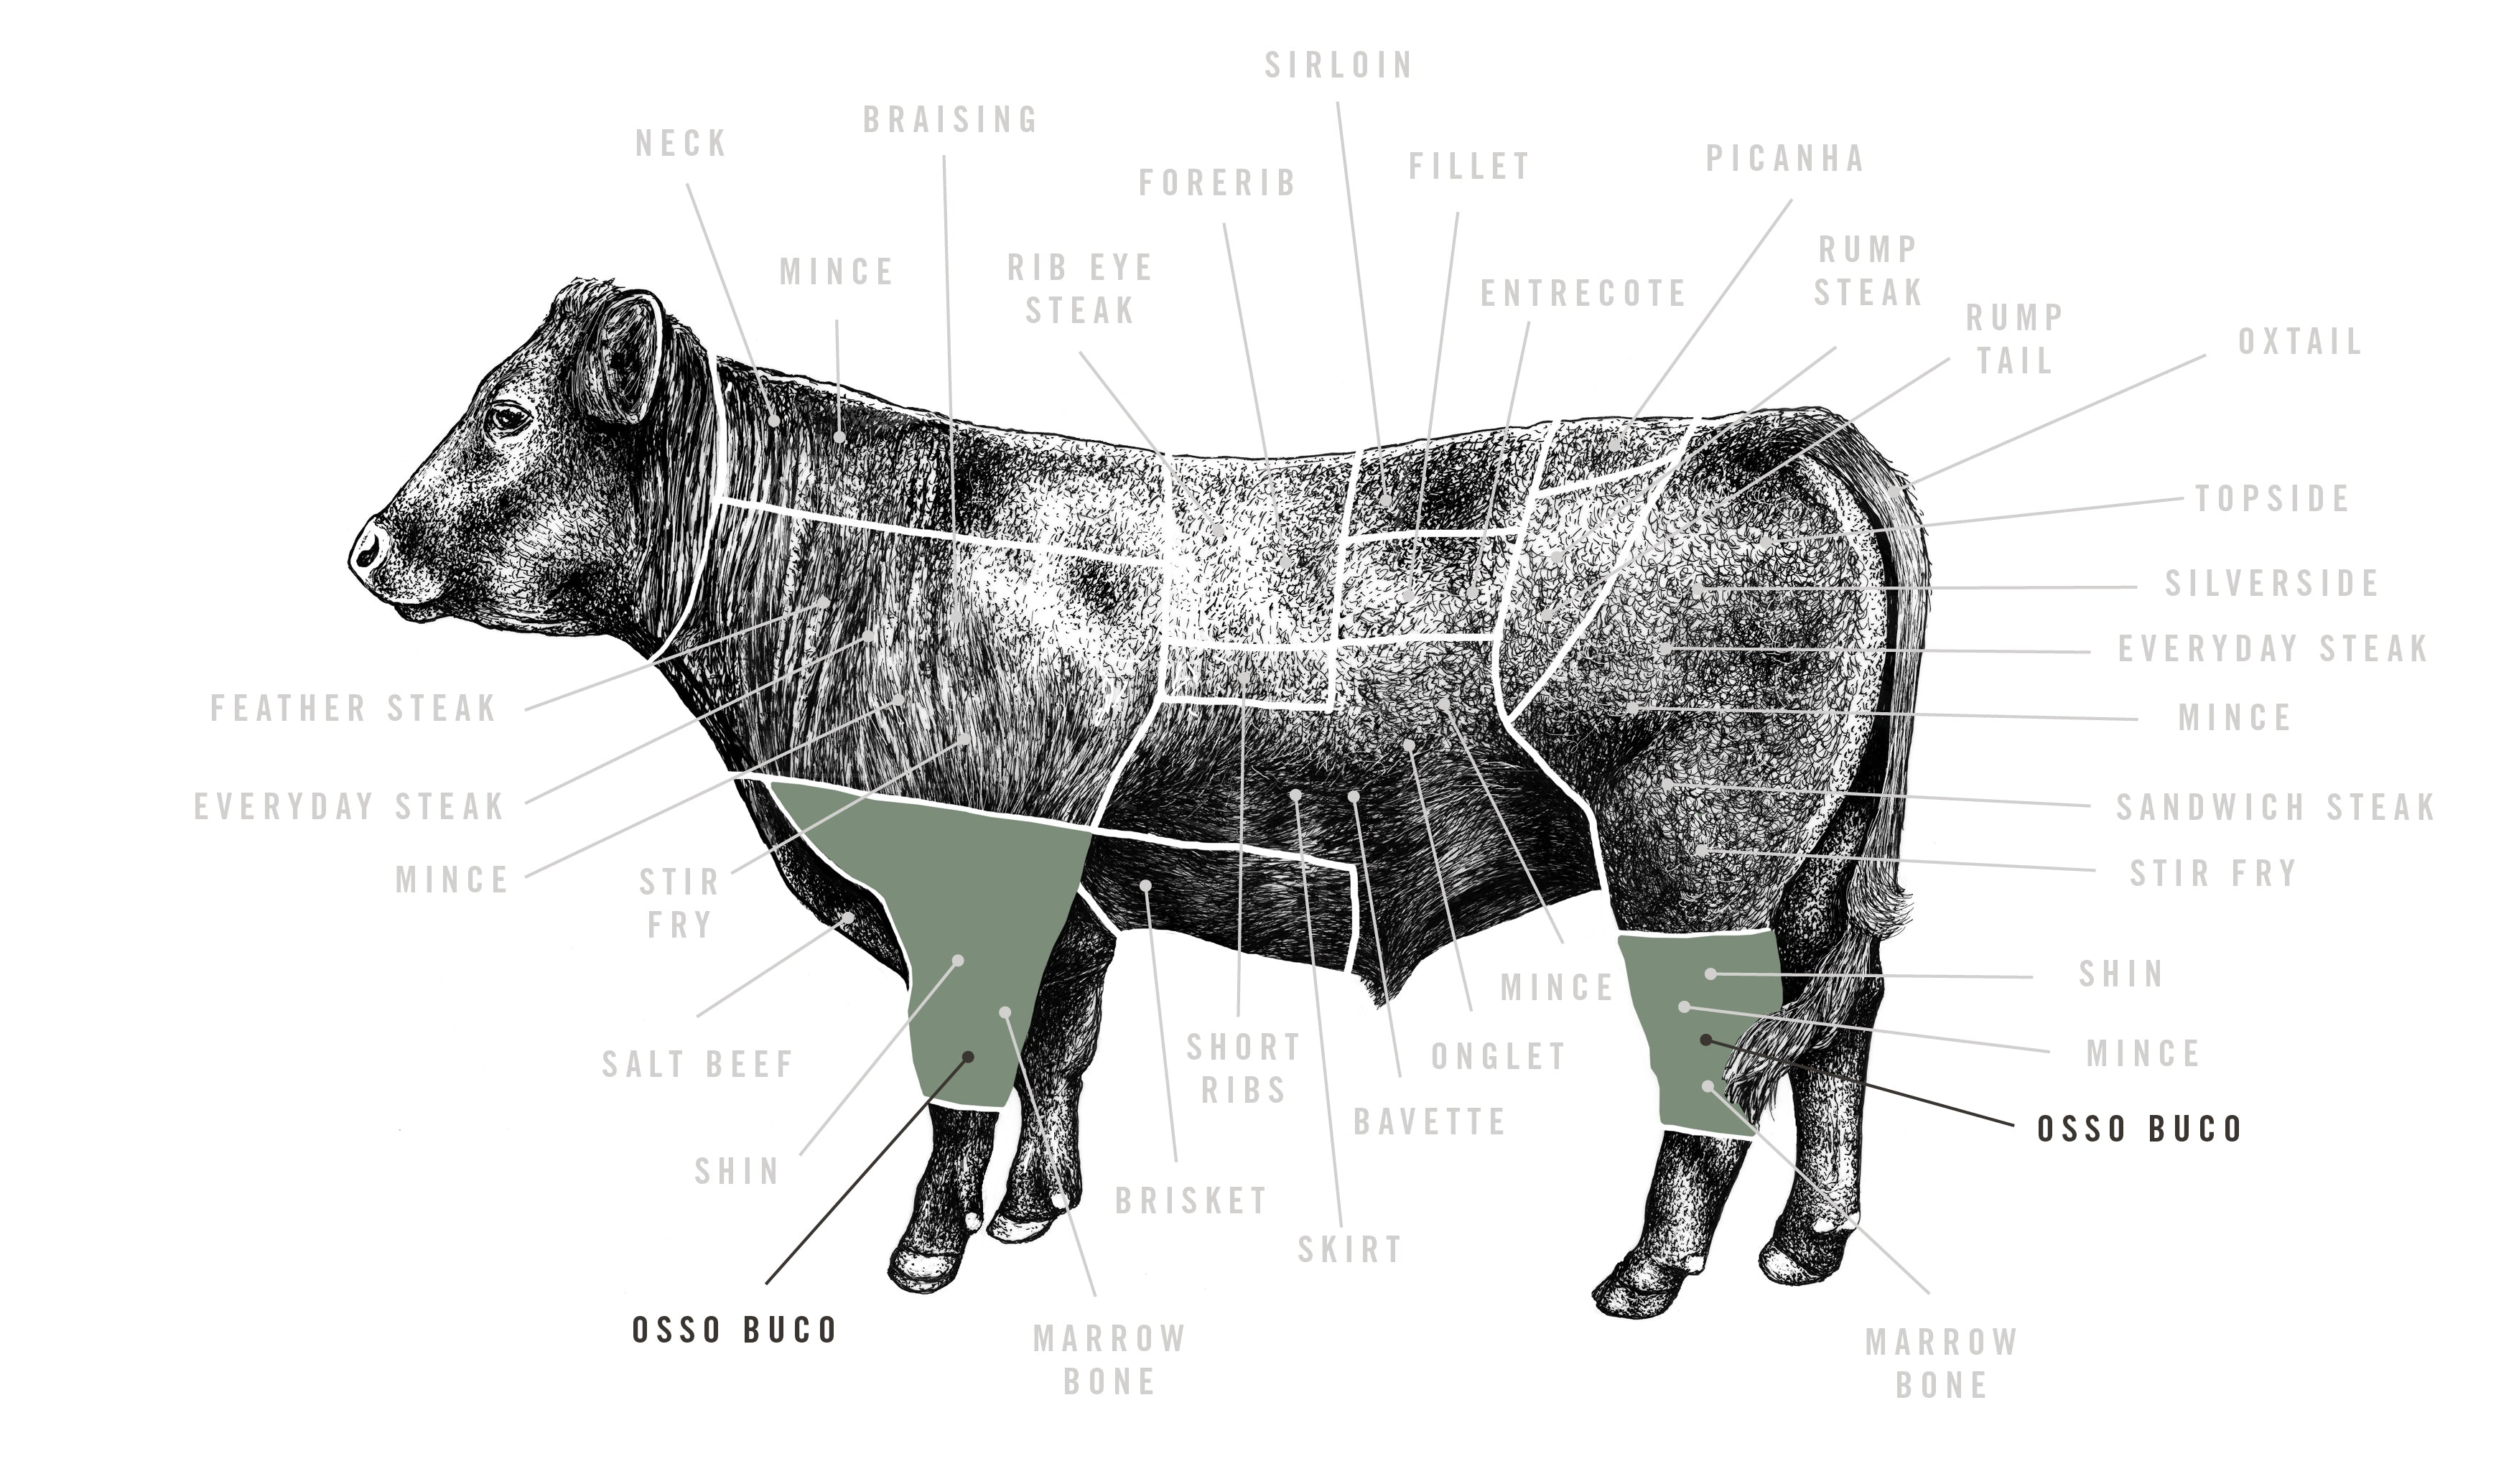 Grass Fed Beef Osso Buco meat cuts diagram